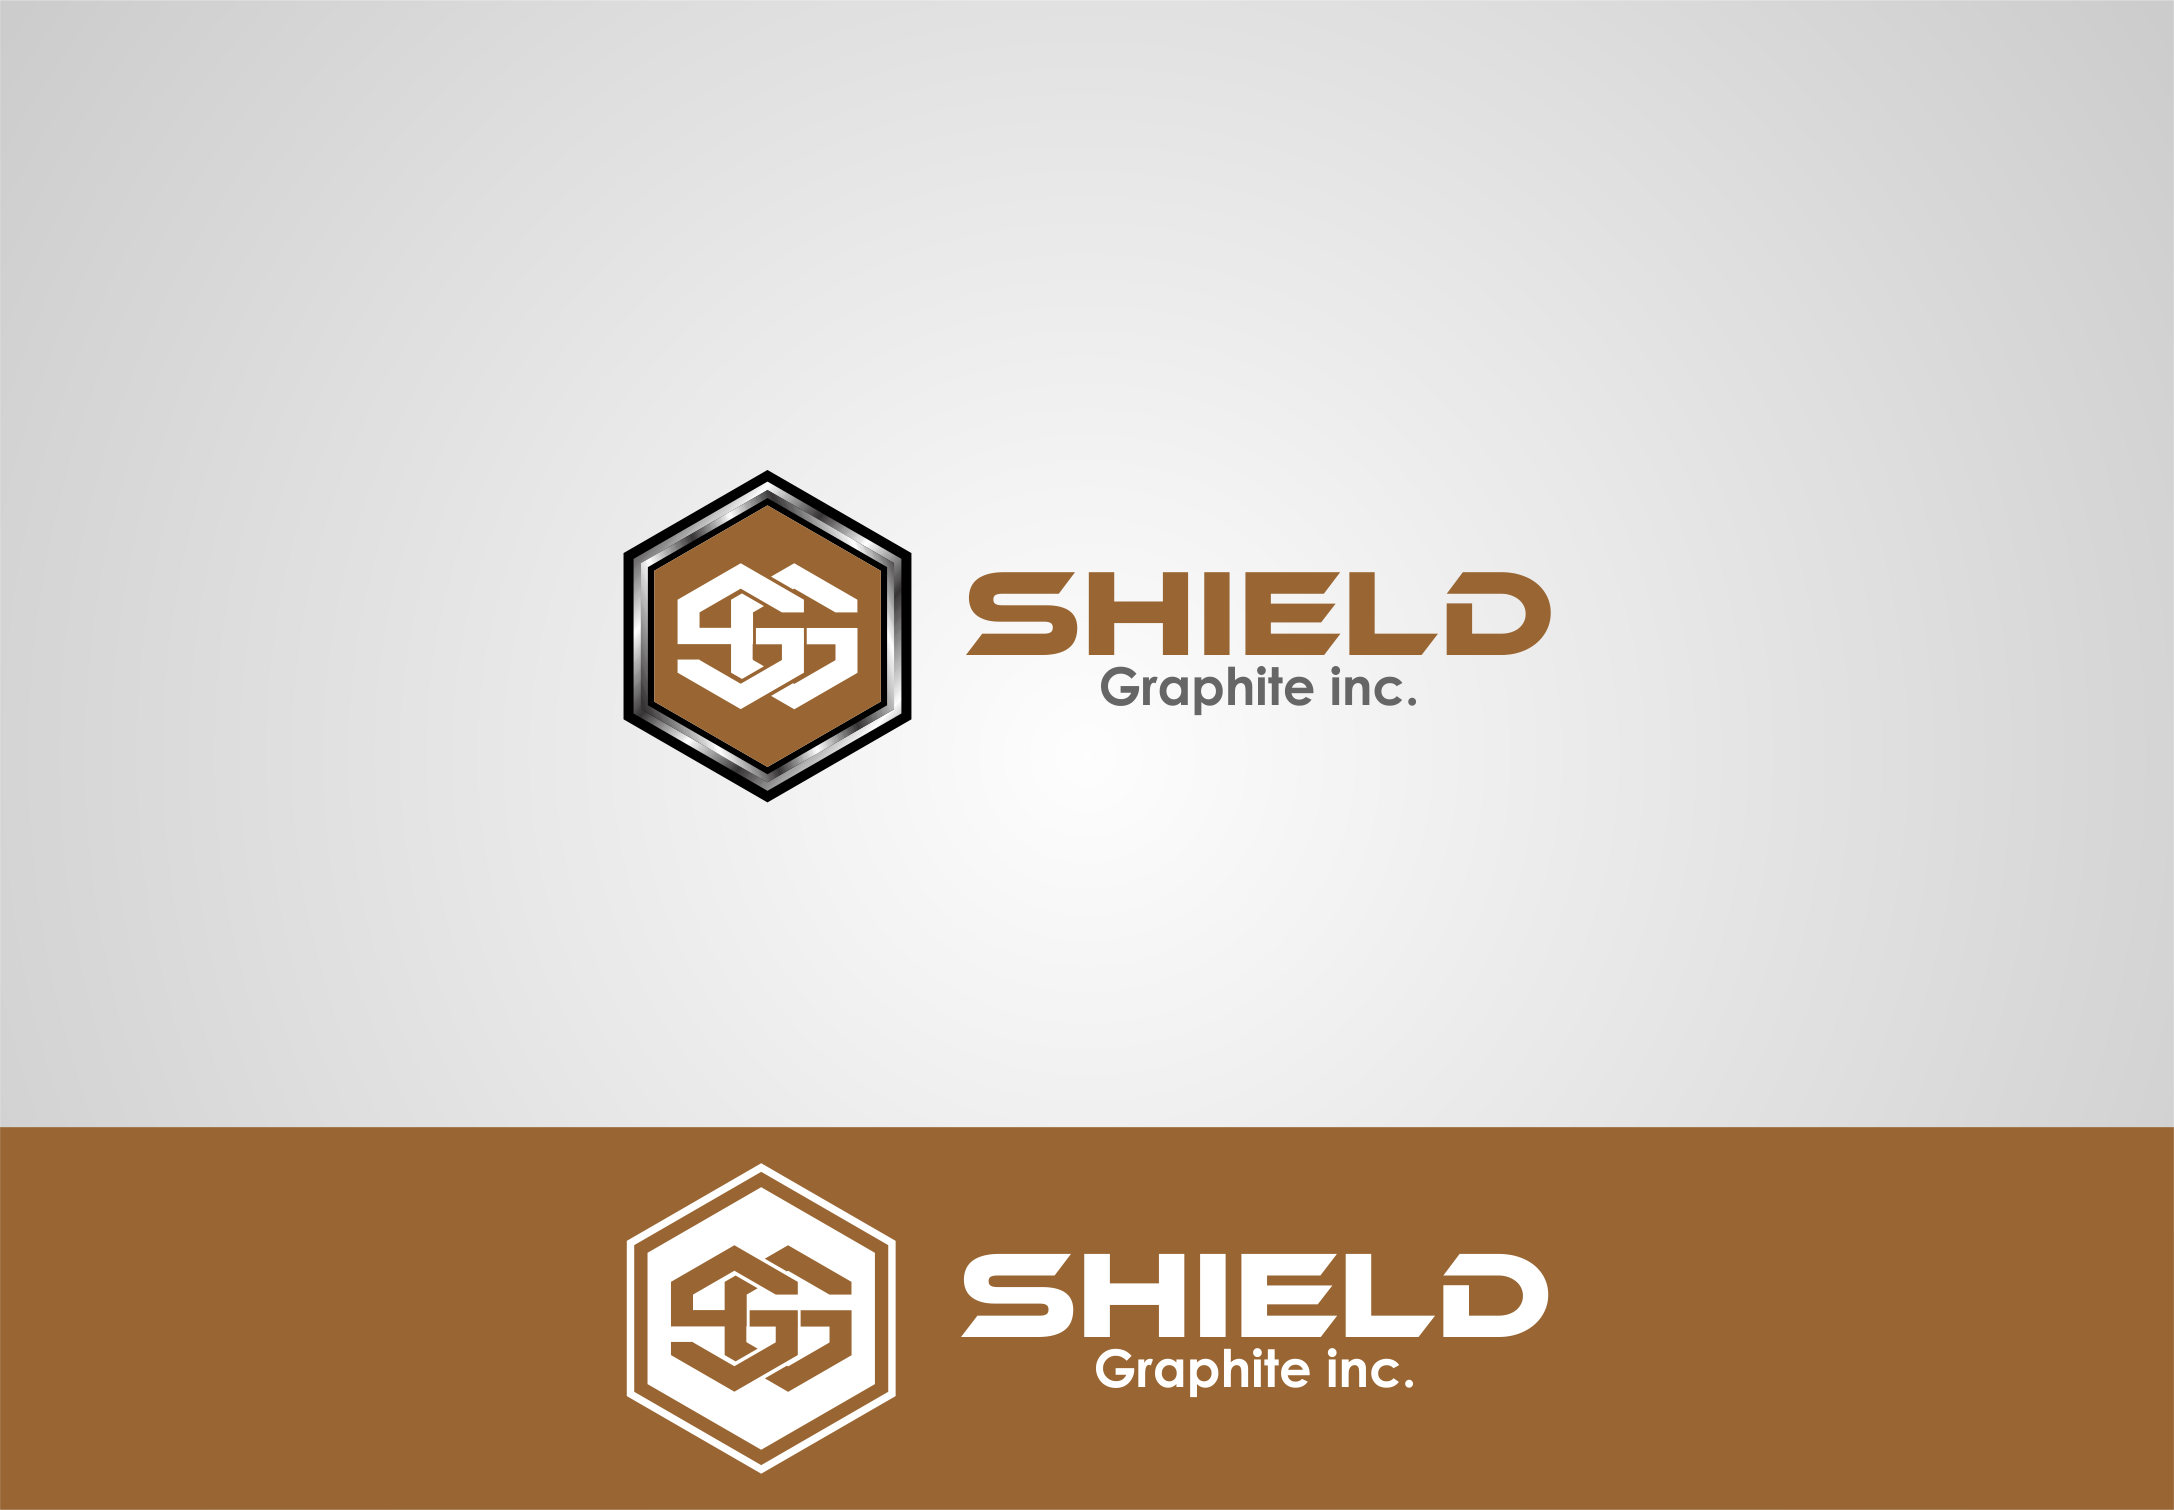 Logo Design by Agus Martoyo - Entry No. 114 in the Logo Design Contest Imaginative Logo Design for Shield Graphite Inc..